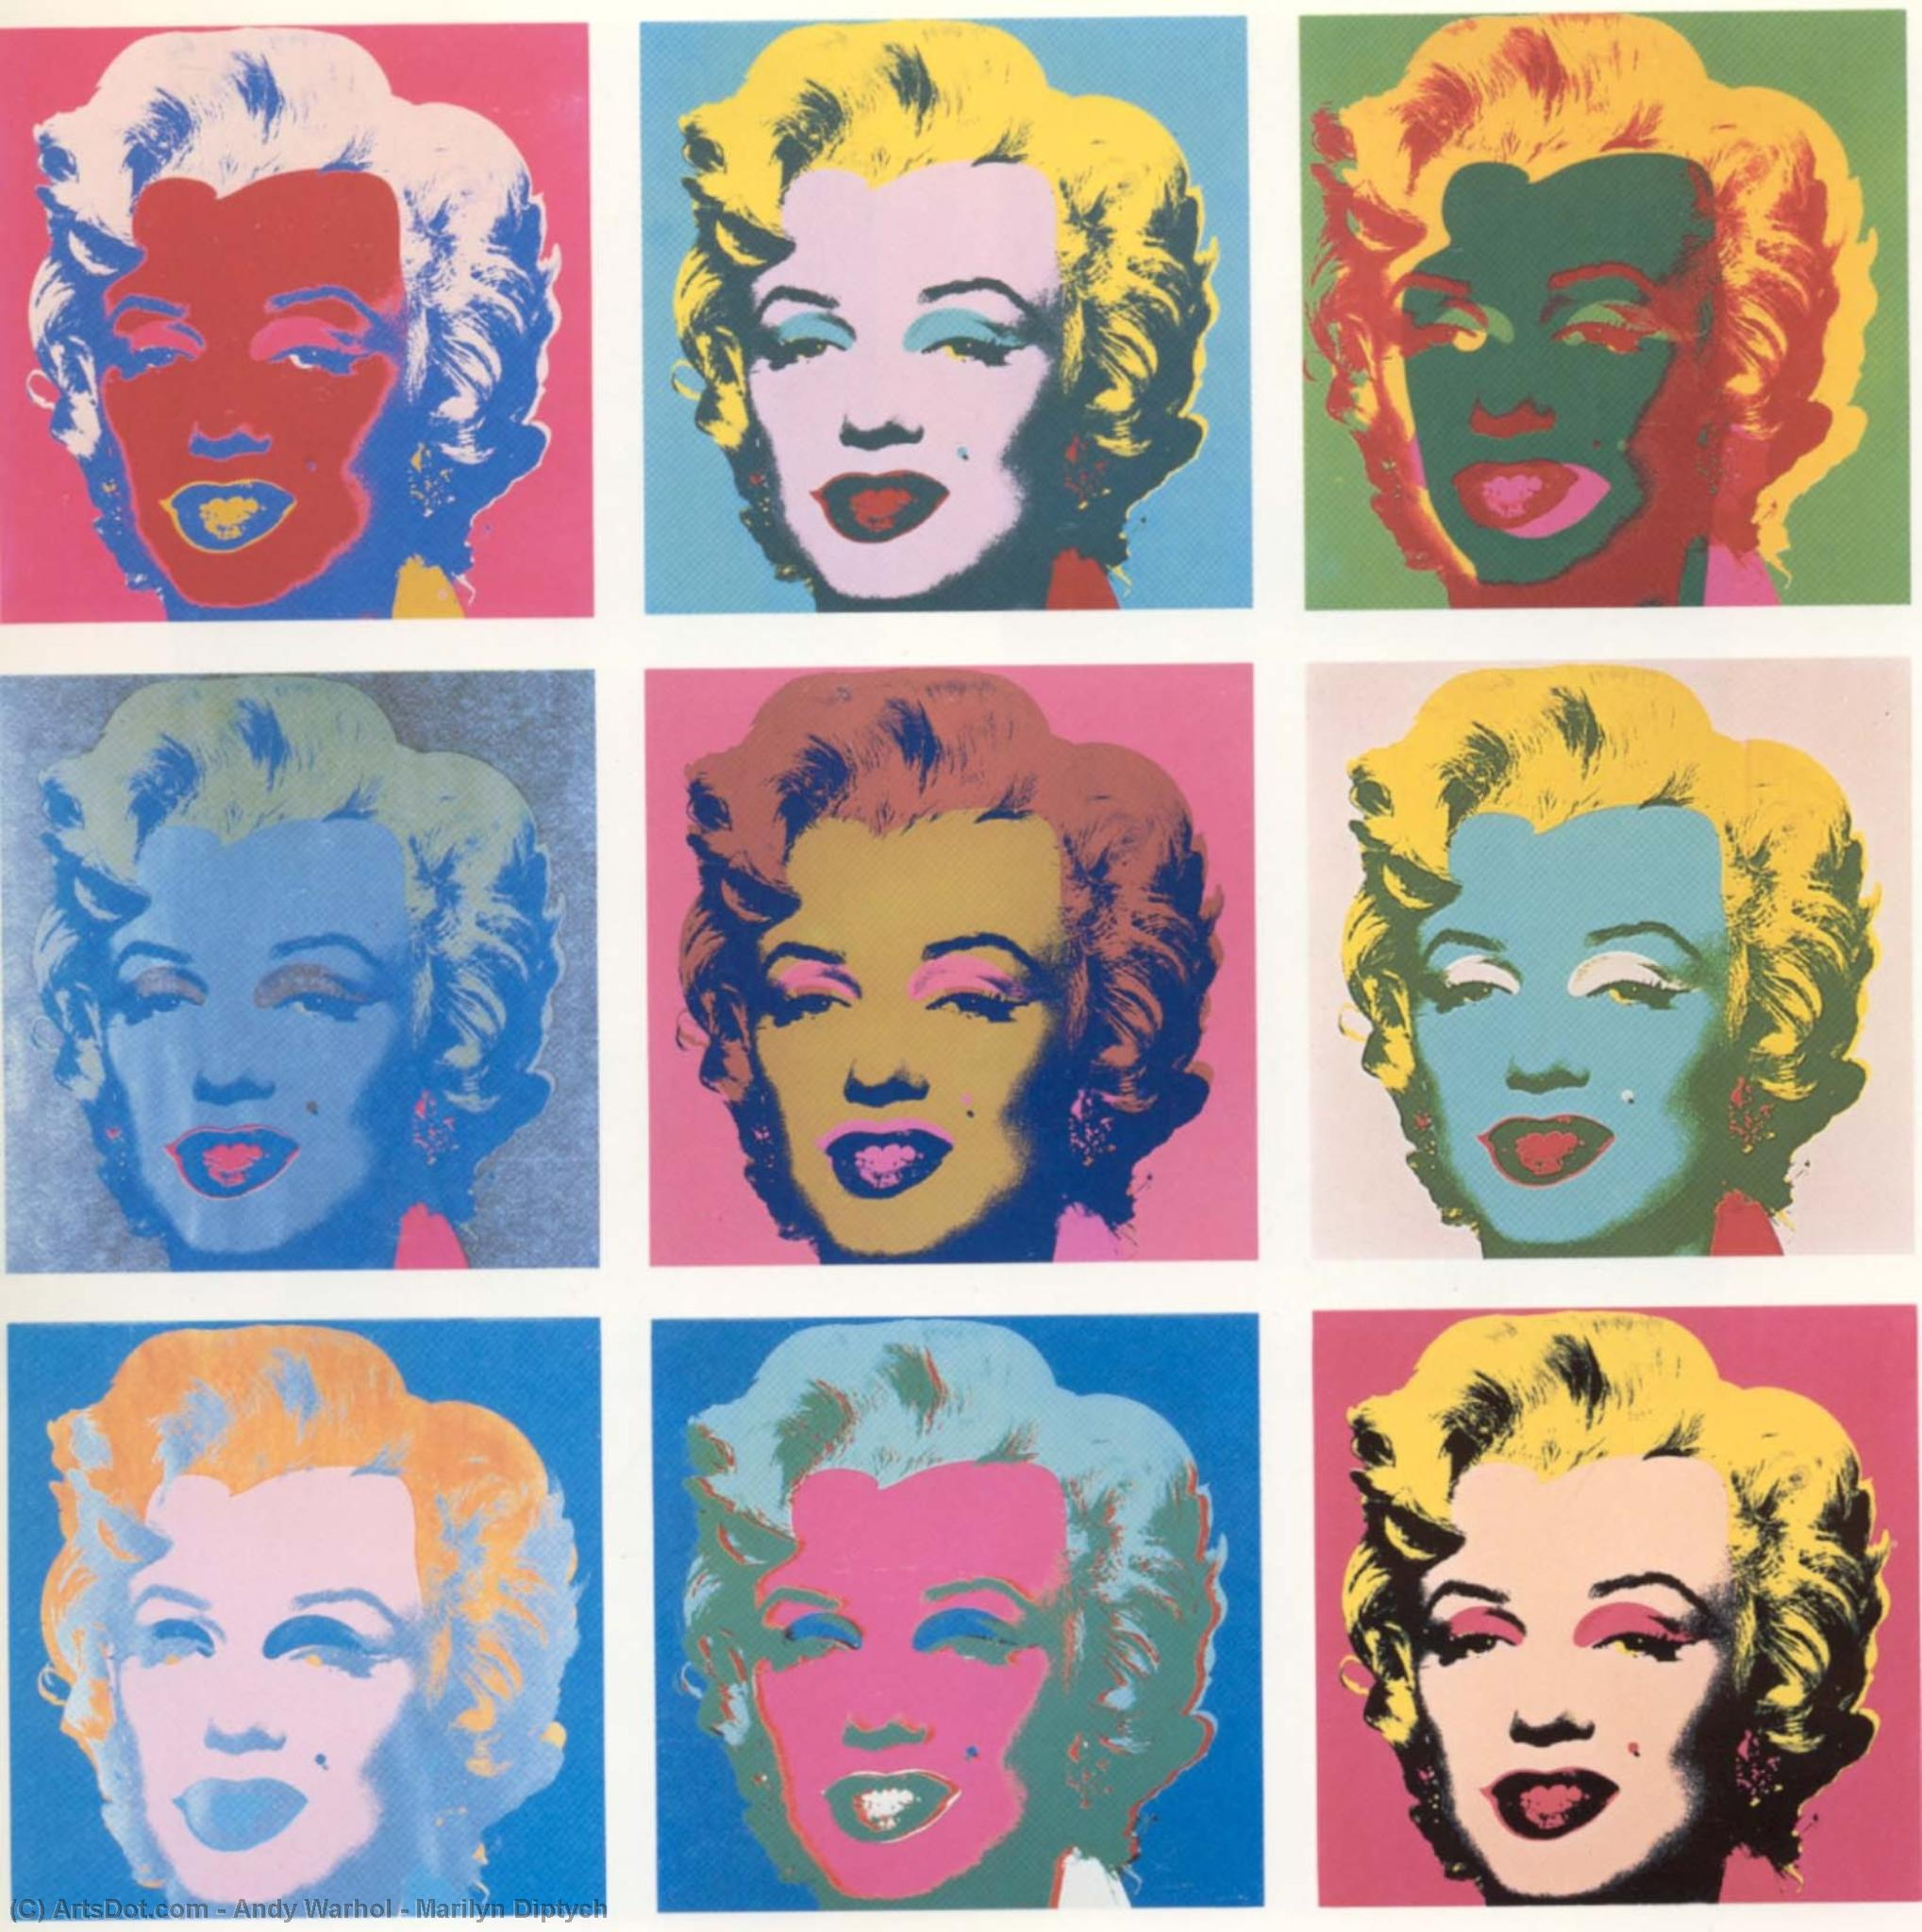 Wikioo.org - The Encyclopedia of Fine Arts - Painting, Artwork by Andy Warhol - Marilyn Diptych